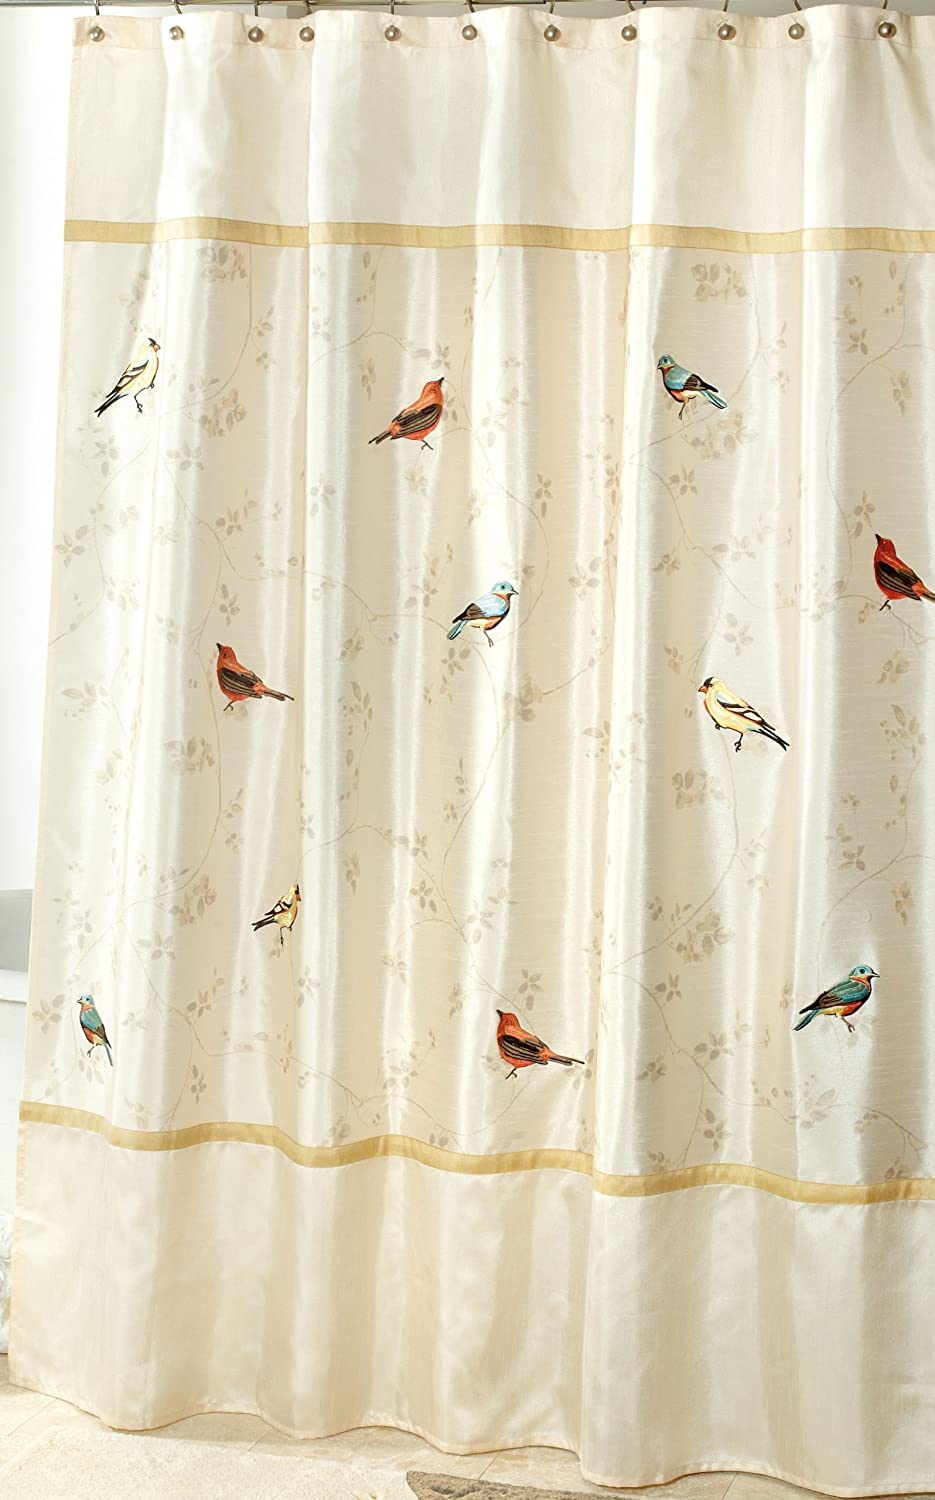 curtain fabric s pink altmeyer shower gray flamingo bedbathhome in curtains bird interdesign and